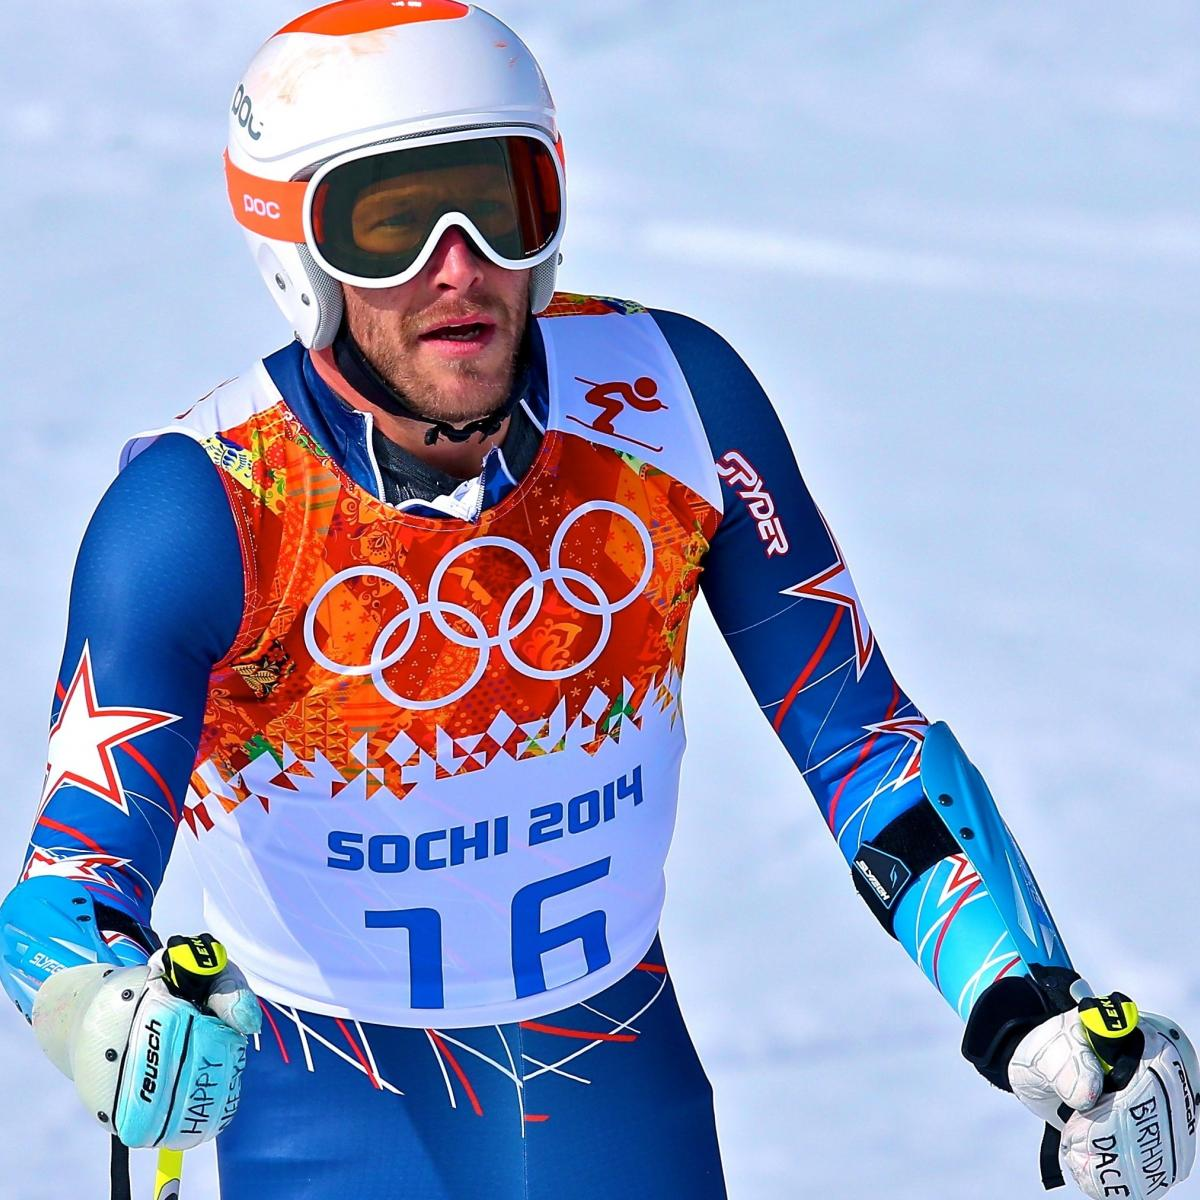 Bode Miller: Bode Miller Injured, Fails To Medal In Men's Giant Slalom